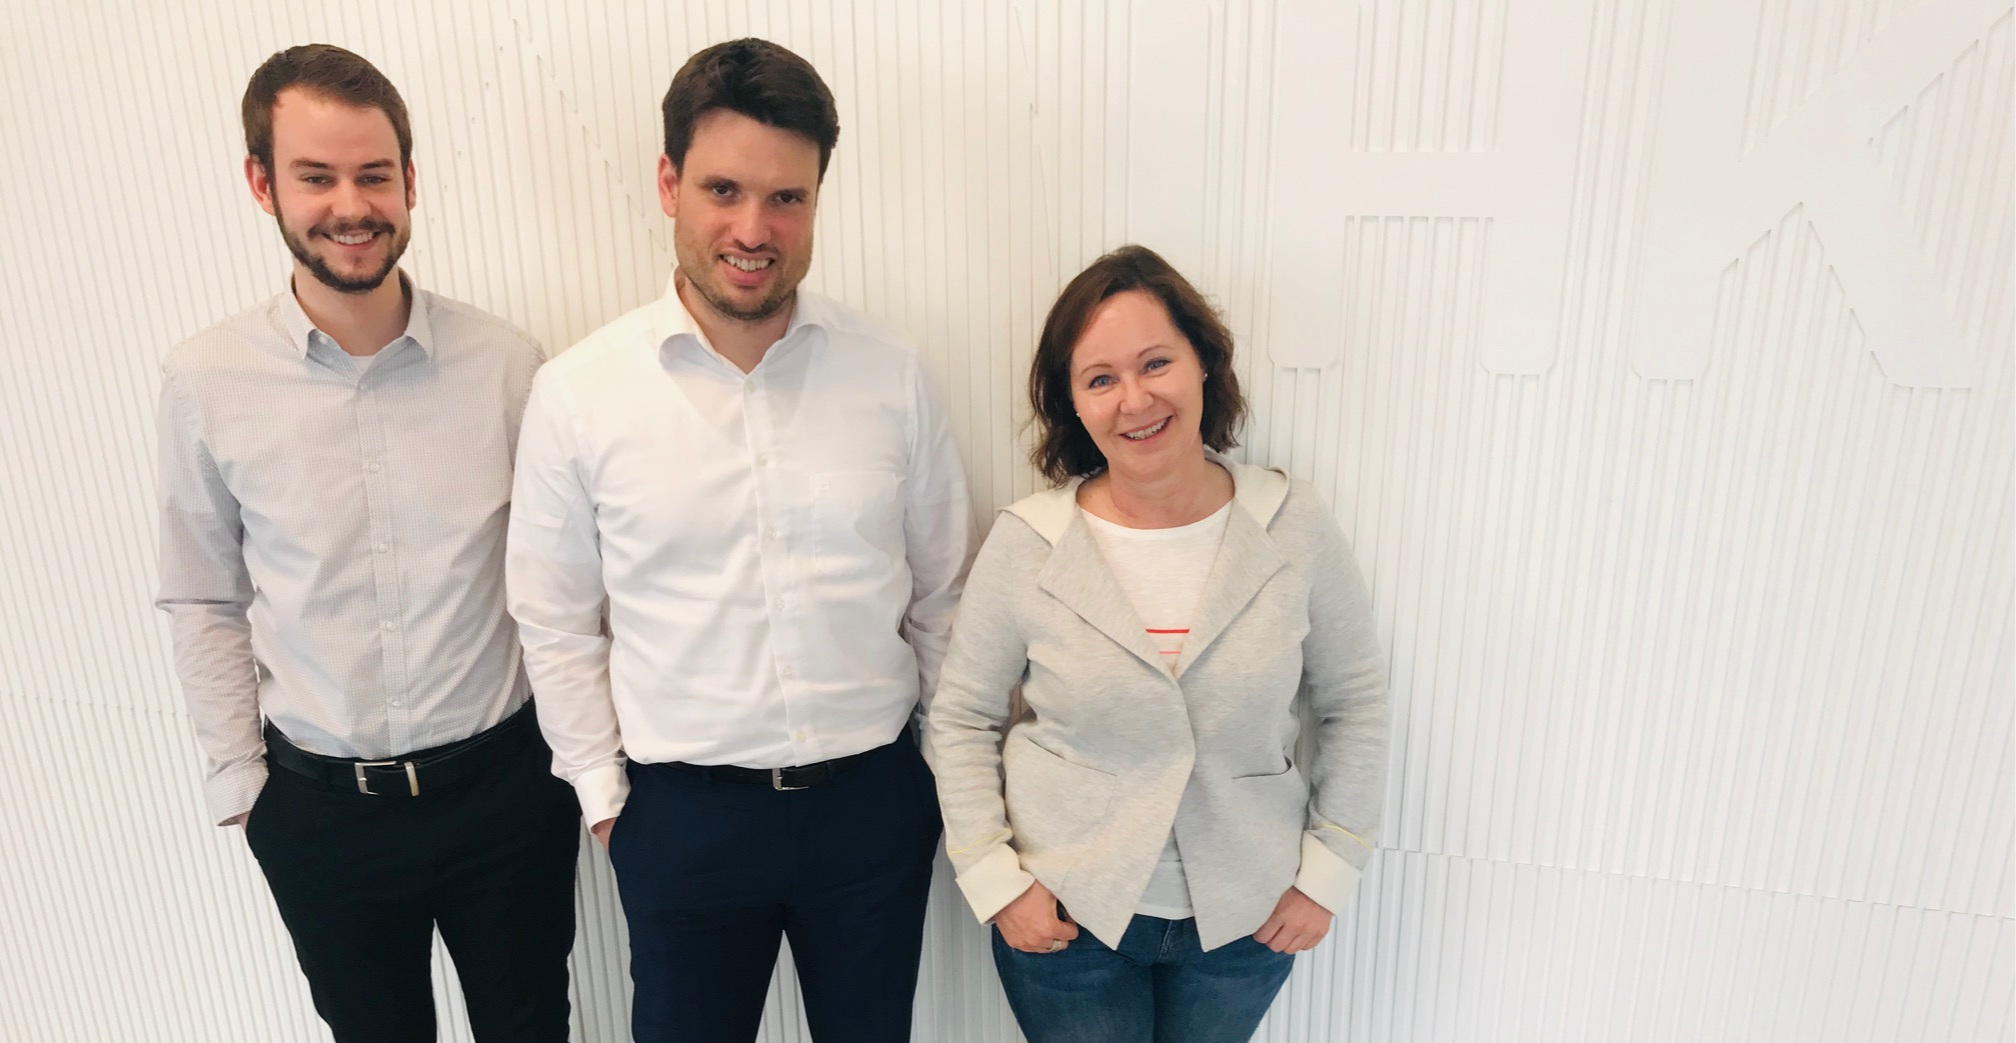 The team of Start.up! Germany - Munich: Gabriele Vetter, Christian Neugebauer and Lucas Wiegand (from right to left)  For questions and inquiries please contact us via  email .